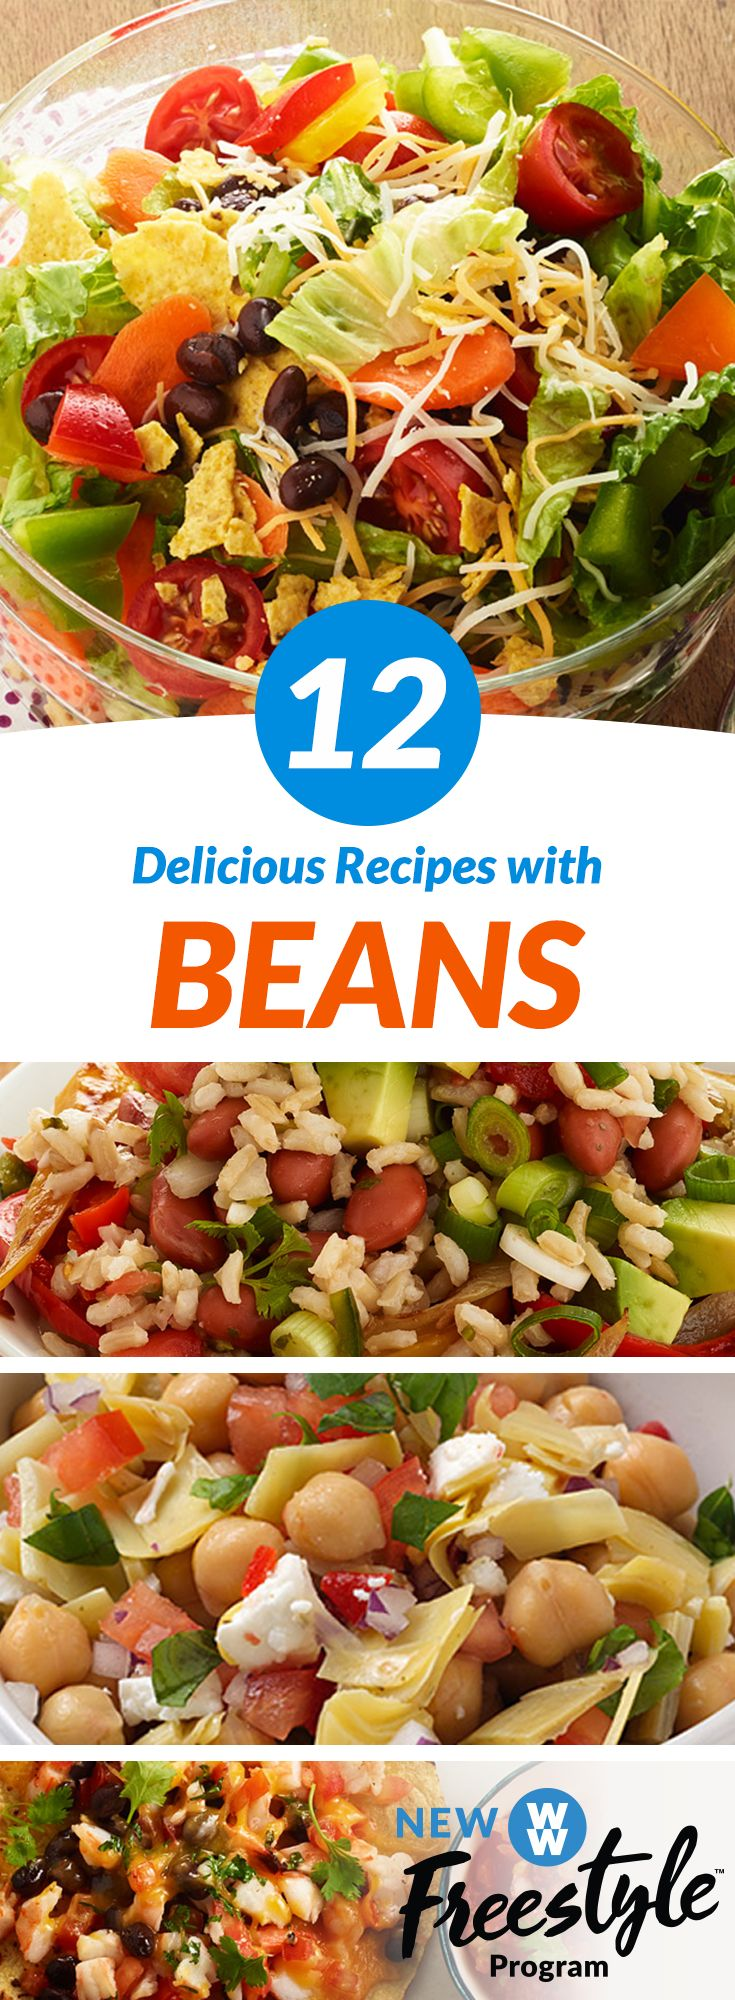 12 Bean Recipes under 3 SmartPoints | These delicious bean filled dishes are about to be your new go-to meals & snacks– especially now that legumes are 0 SmartPoints on WW Freestyle!